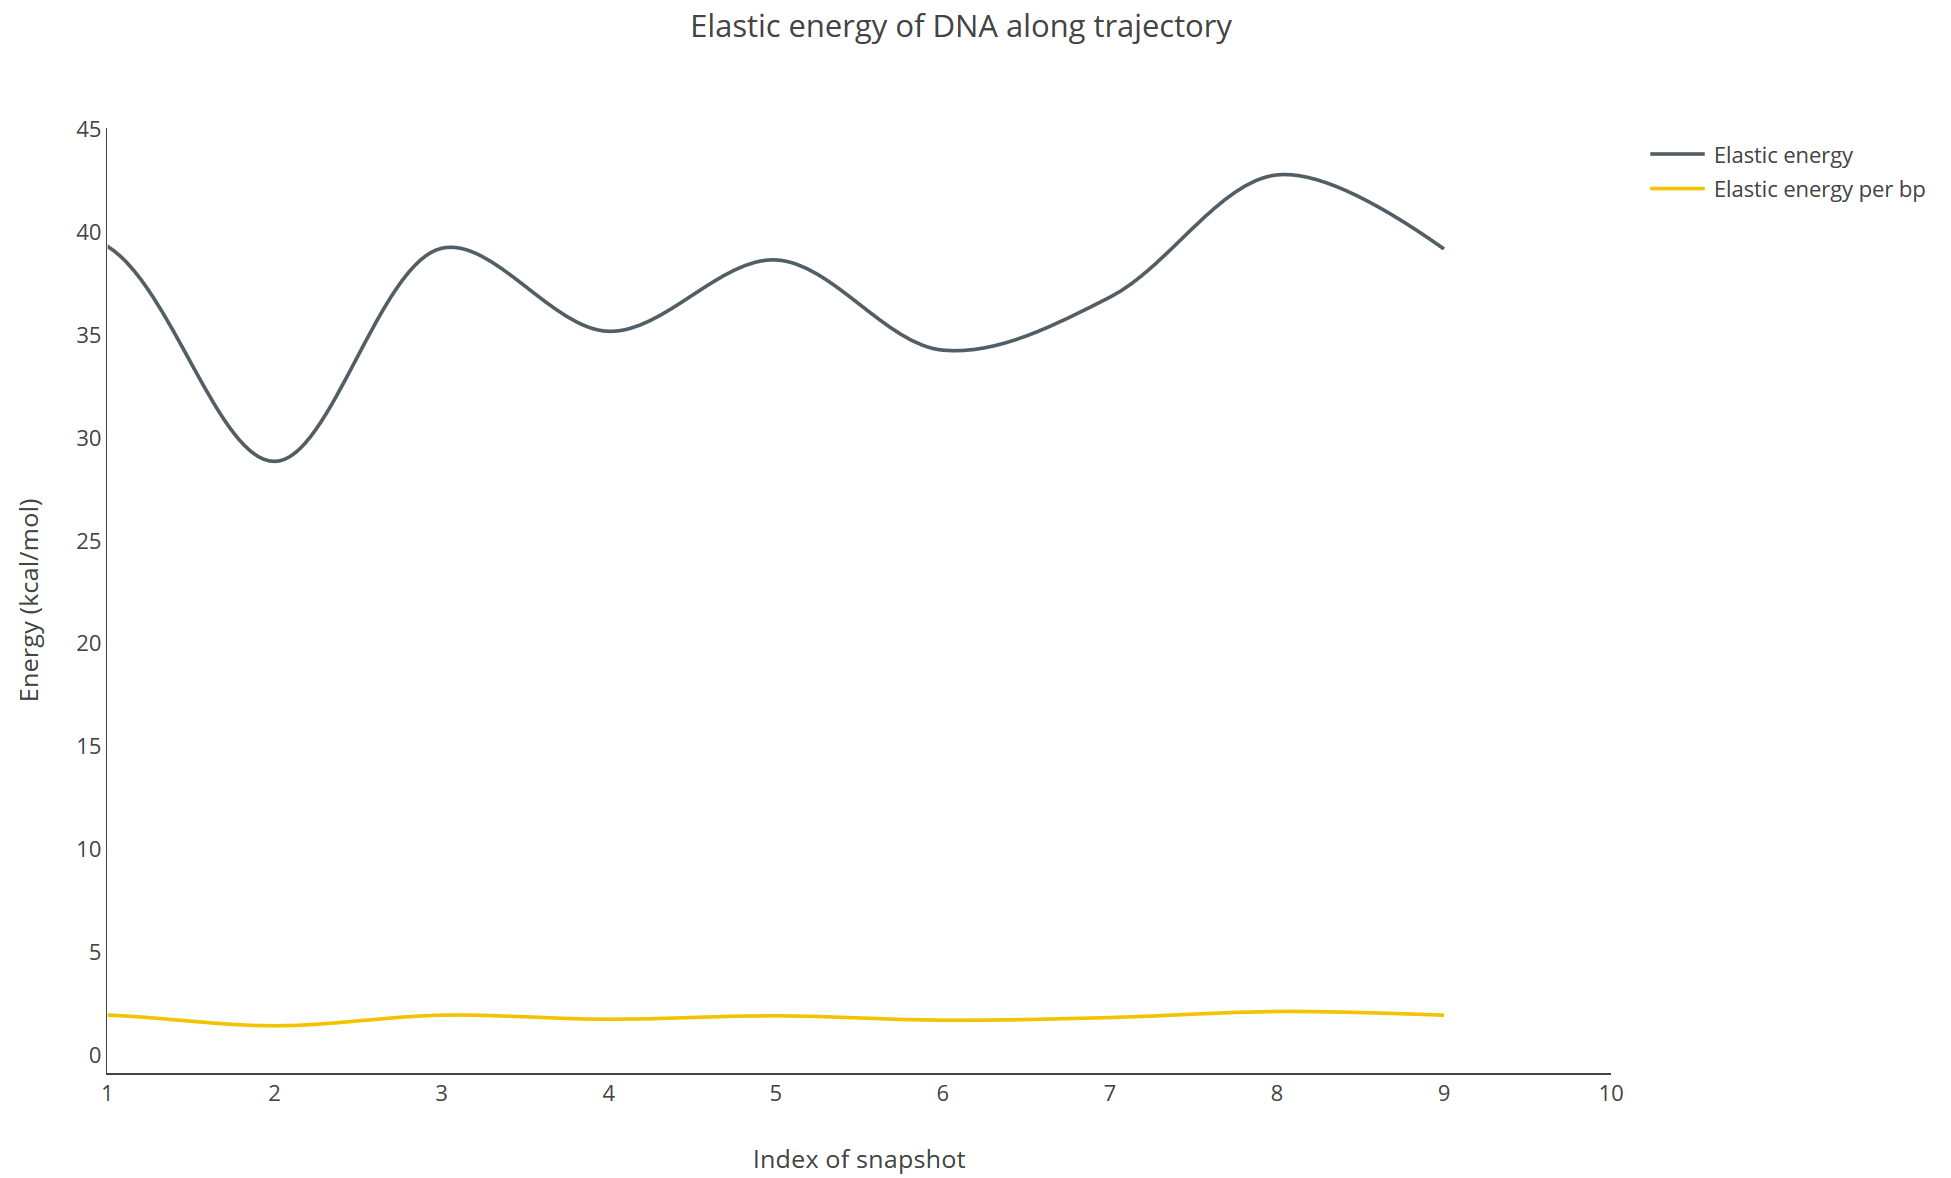 elastic energy of dna along trajectory (available for trajectory  flexibility analysis)